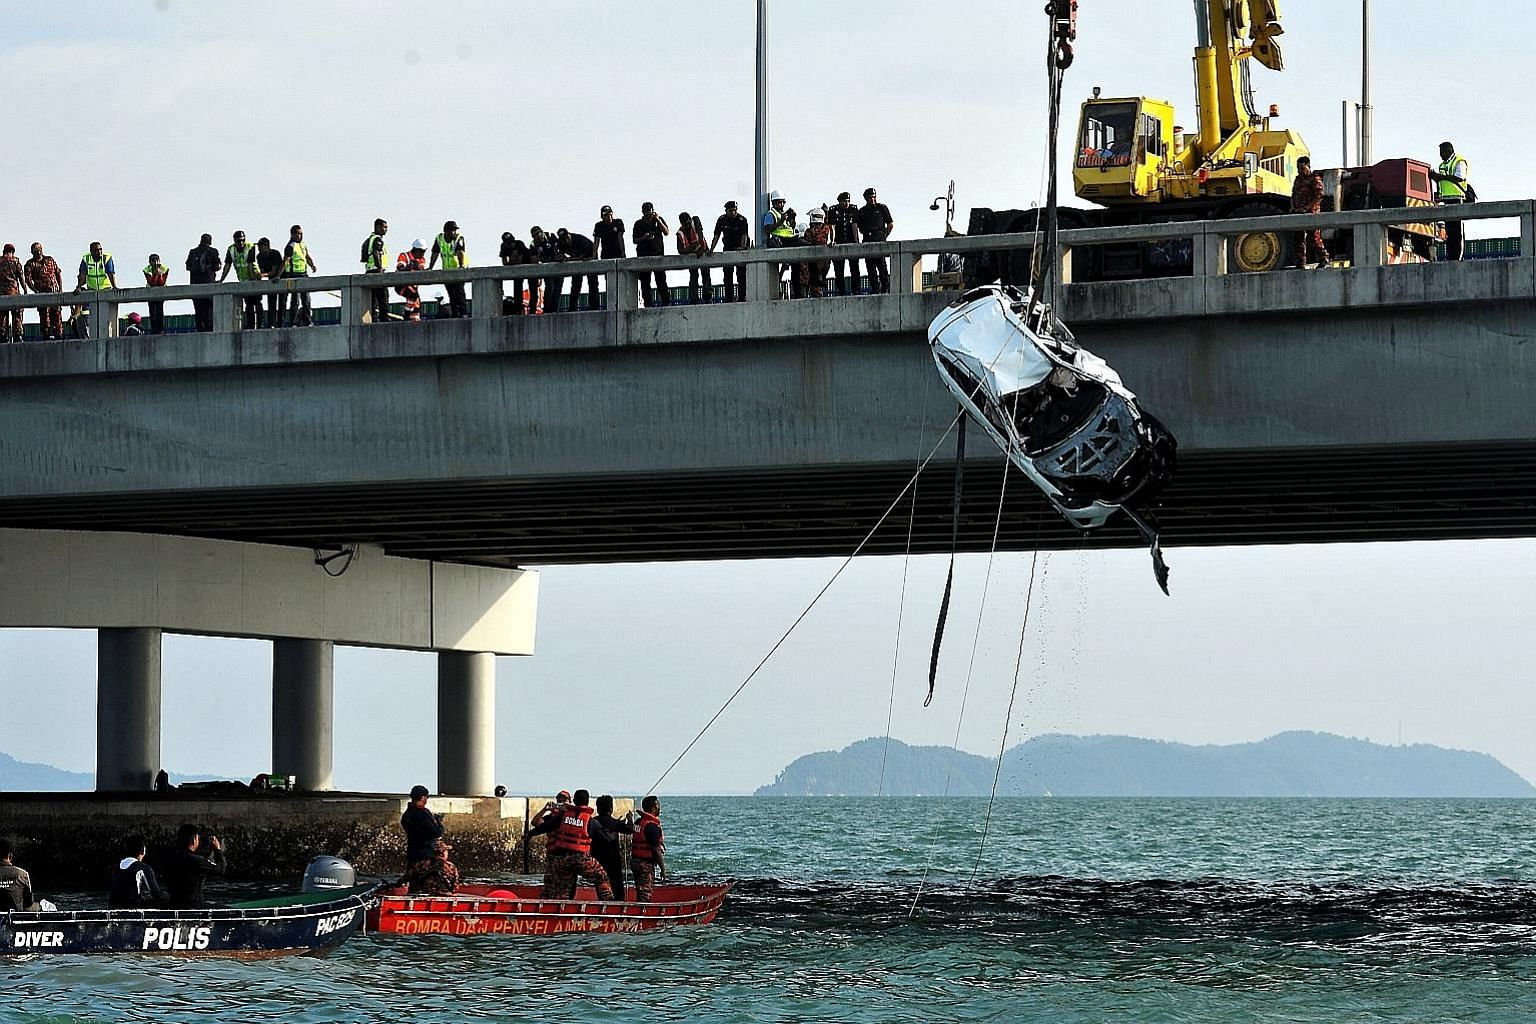 The recovery team used four cables attached to a crane to lift the Mazda CX-5 SUV, submerged at a depth of 15m, out of the water. The body of 20-year-old college student Moey Yun Peng was found in the driver's seat. The car had plunged into the sea a